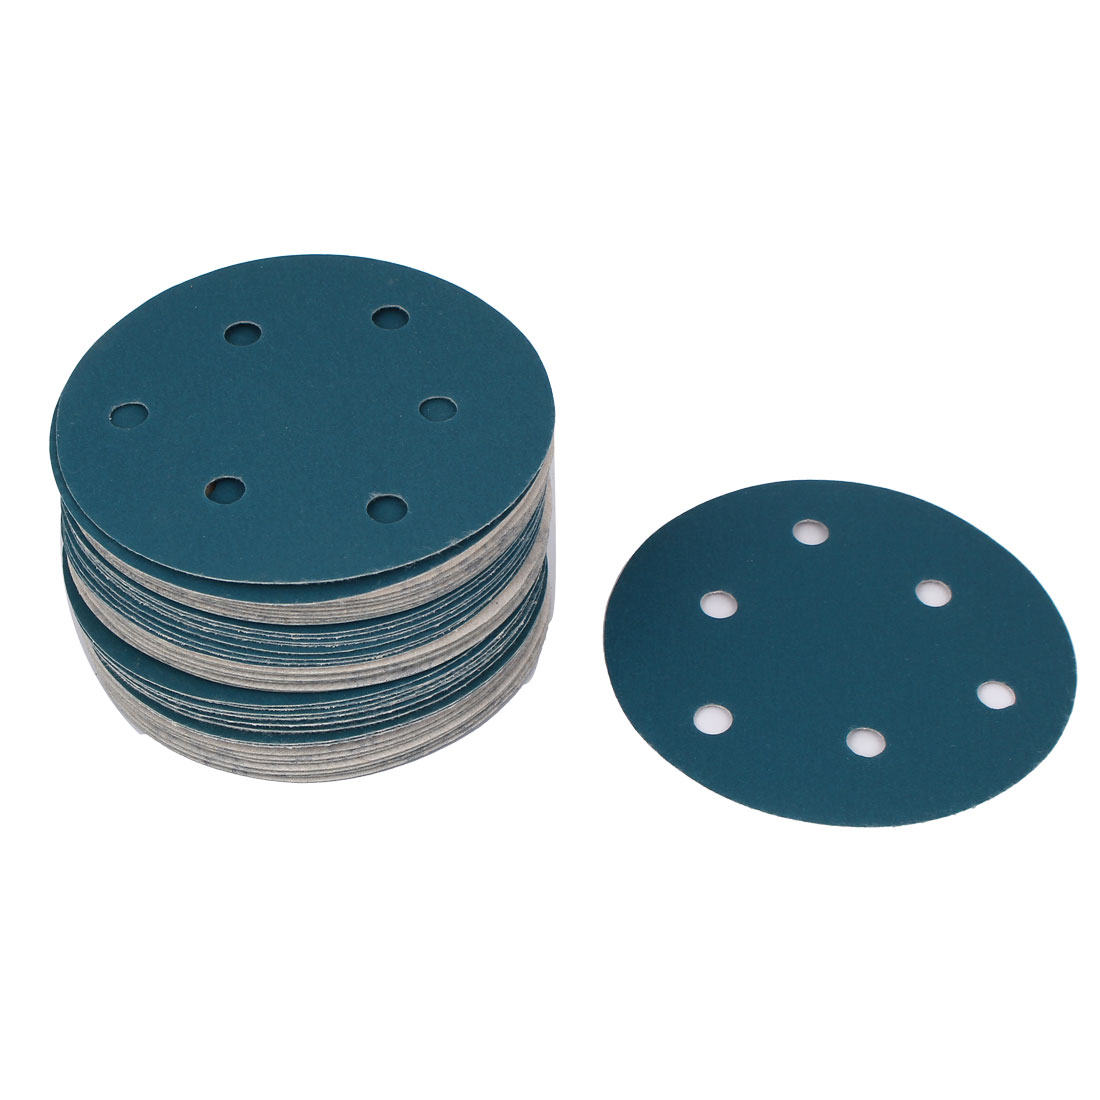 "5"" Sandpaper Auto Car Paint Polishing Sanding Disc Hook and Loop Fastener 6 Holes 600 Grit 50pcs"